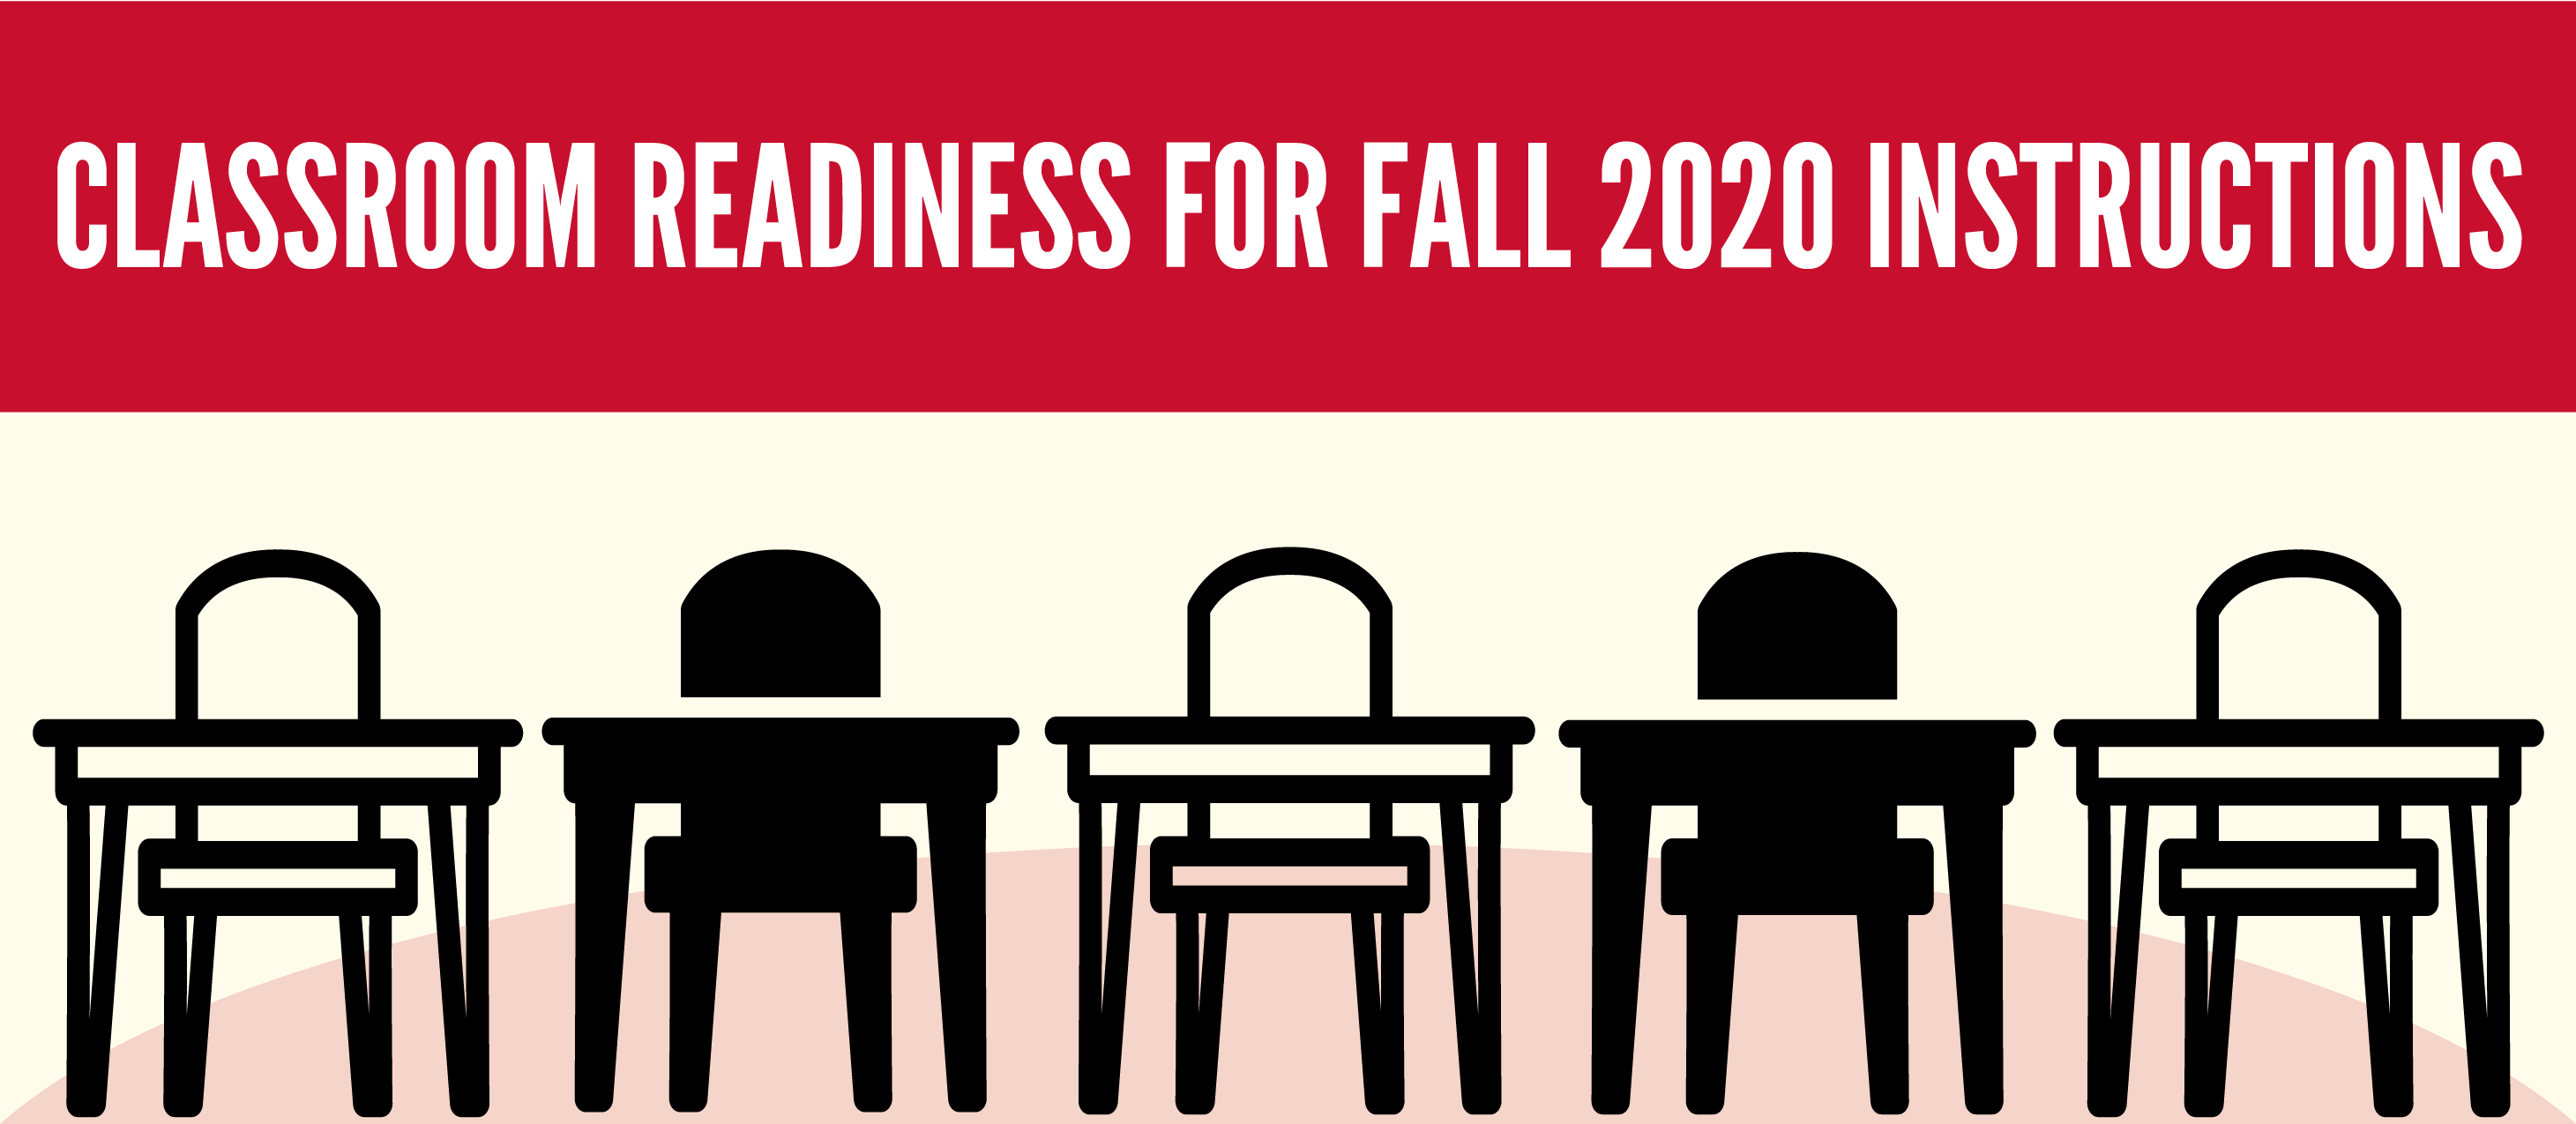 Classrooms Readiness For Fall 2020 Instructions